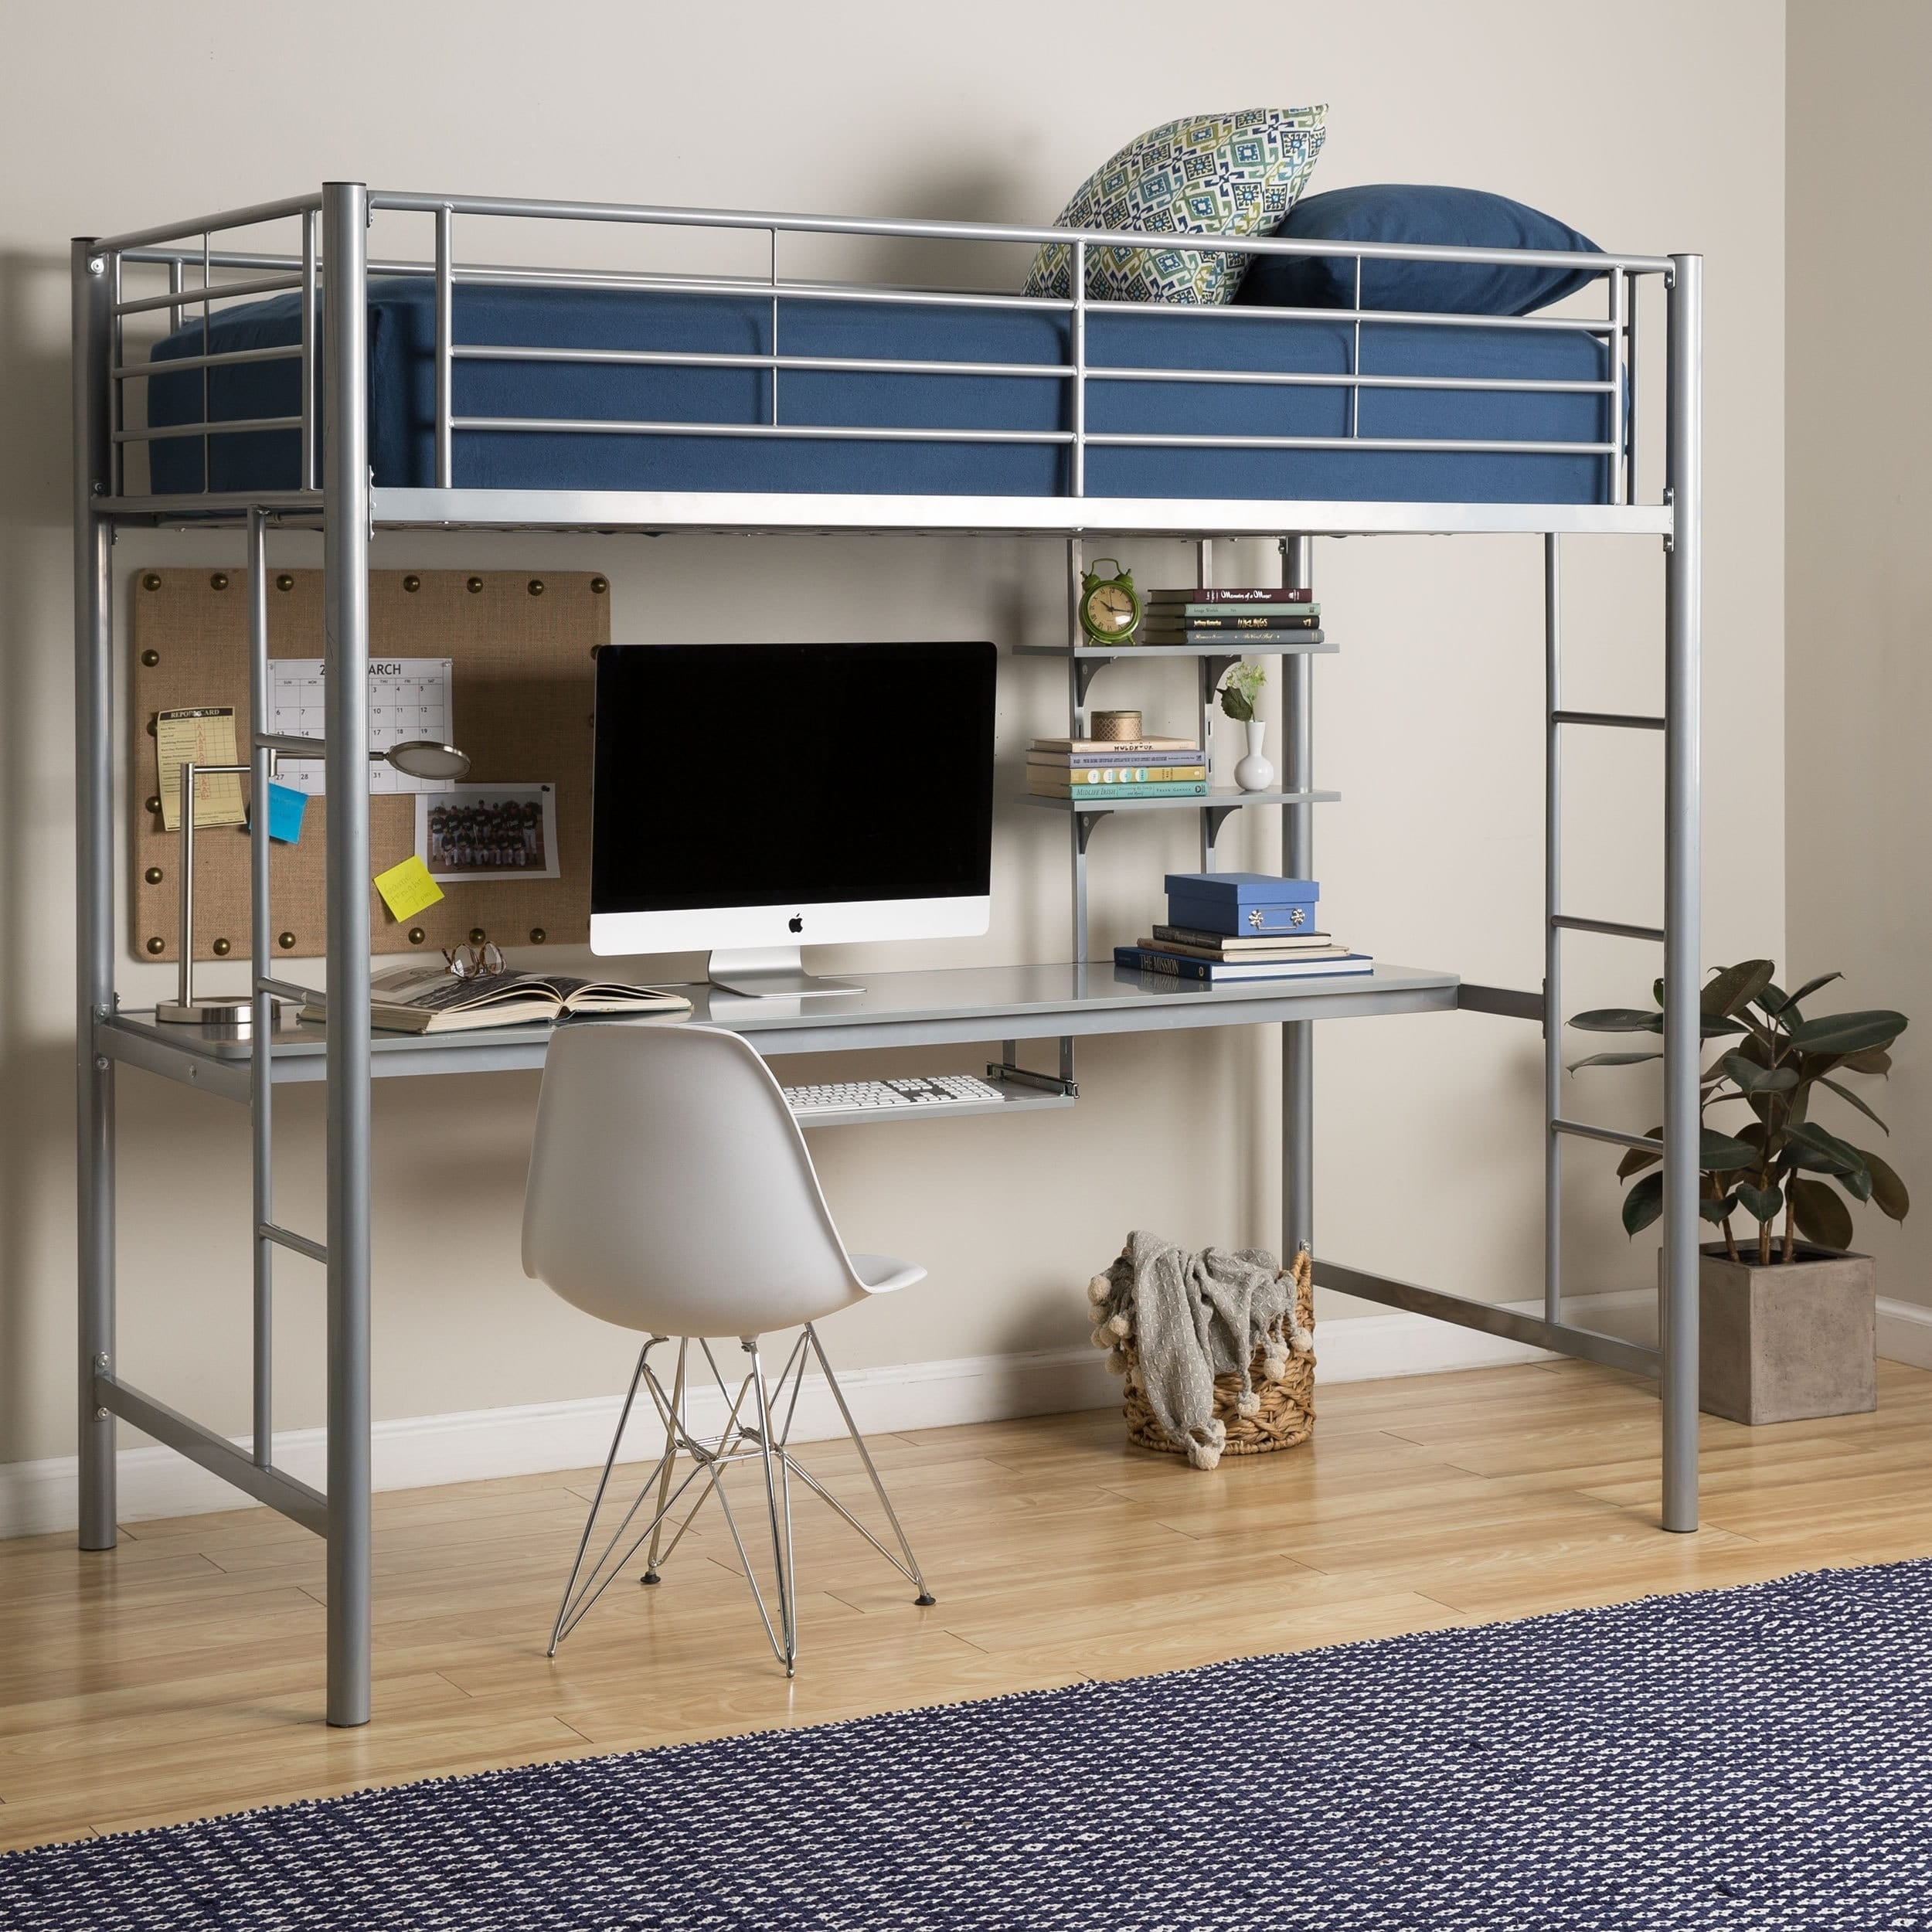 Taylor & Olive Abner Twin Metal Loft Bed with Desk